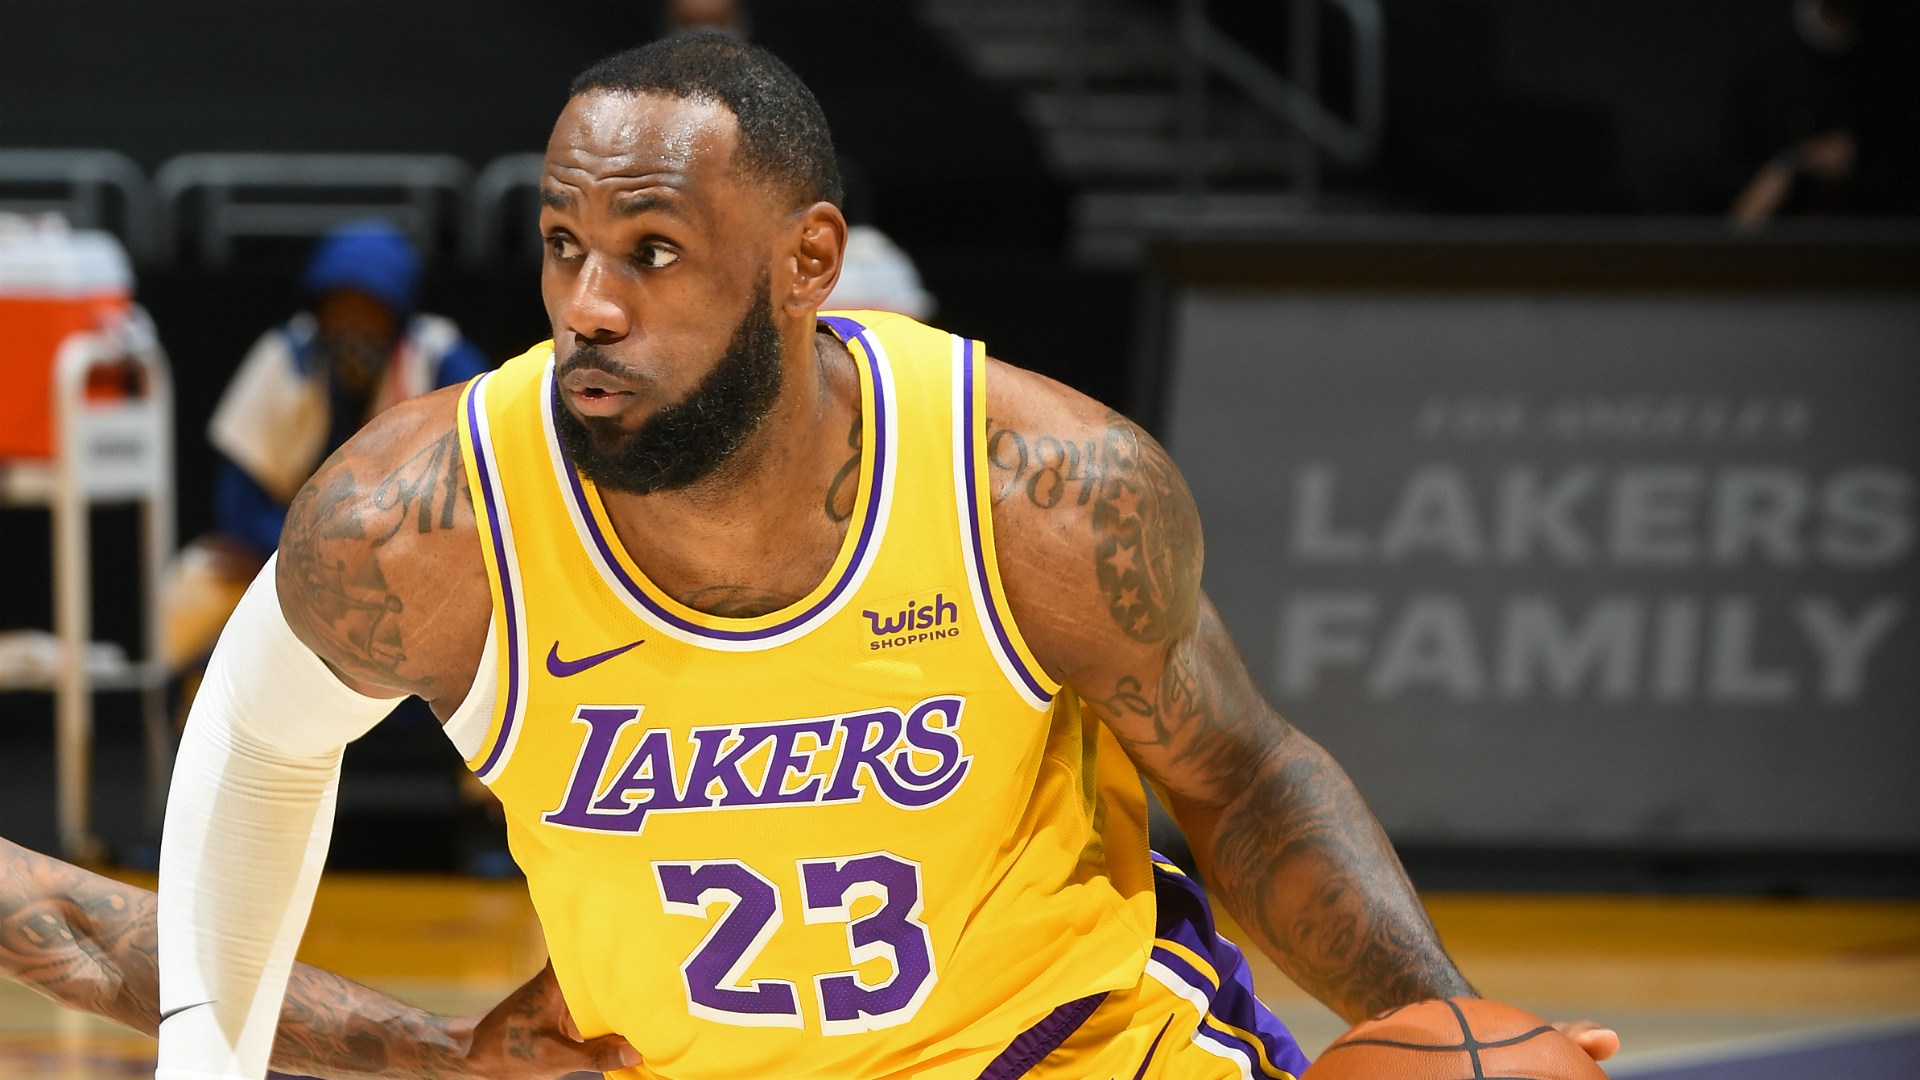 LeBron James offers update on hurt ankle after struggling to process Lakers series opener